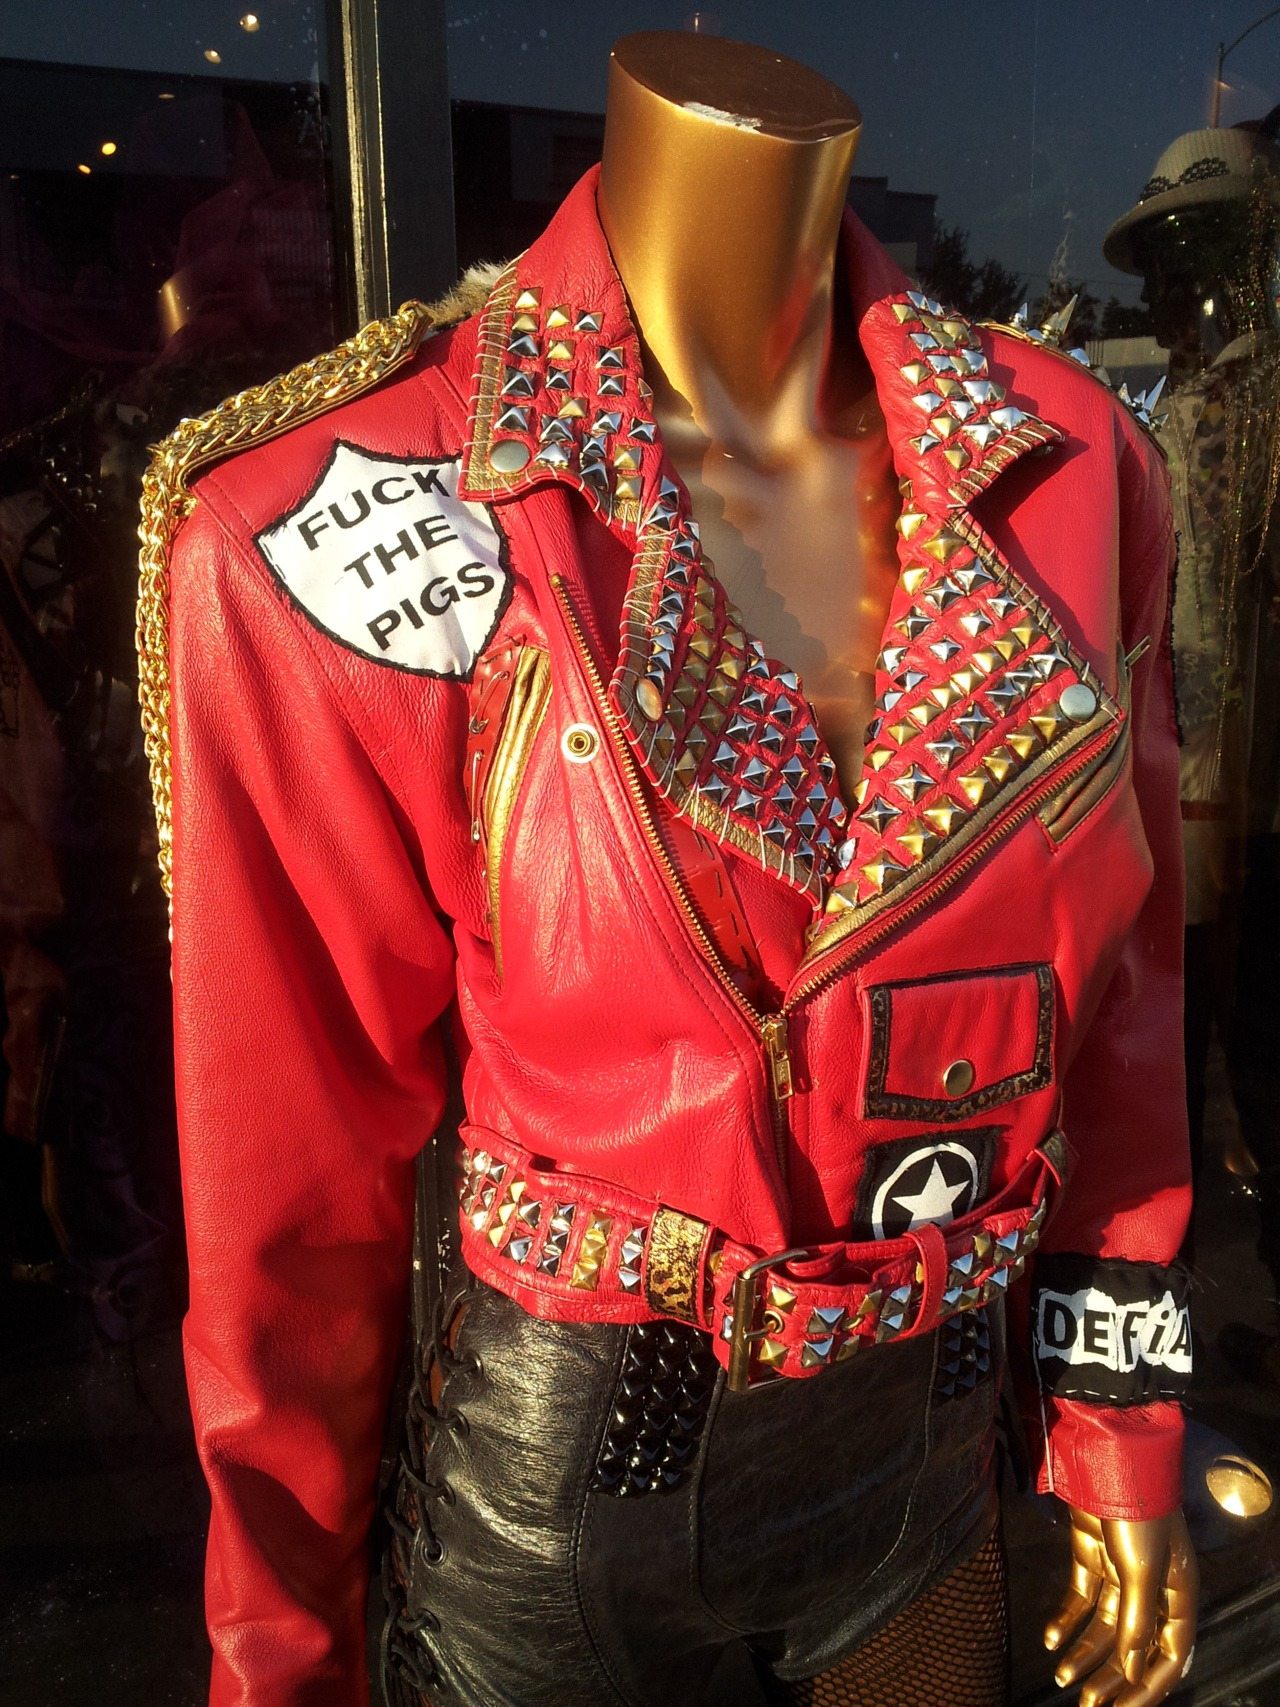 I would marry this manikin, this jacket is ill ass shit and I'm all about fishnets. I was walking down Melrose in L.A. and stopped in my tracks when I saw this.            #GOOD IDEA